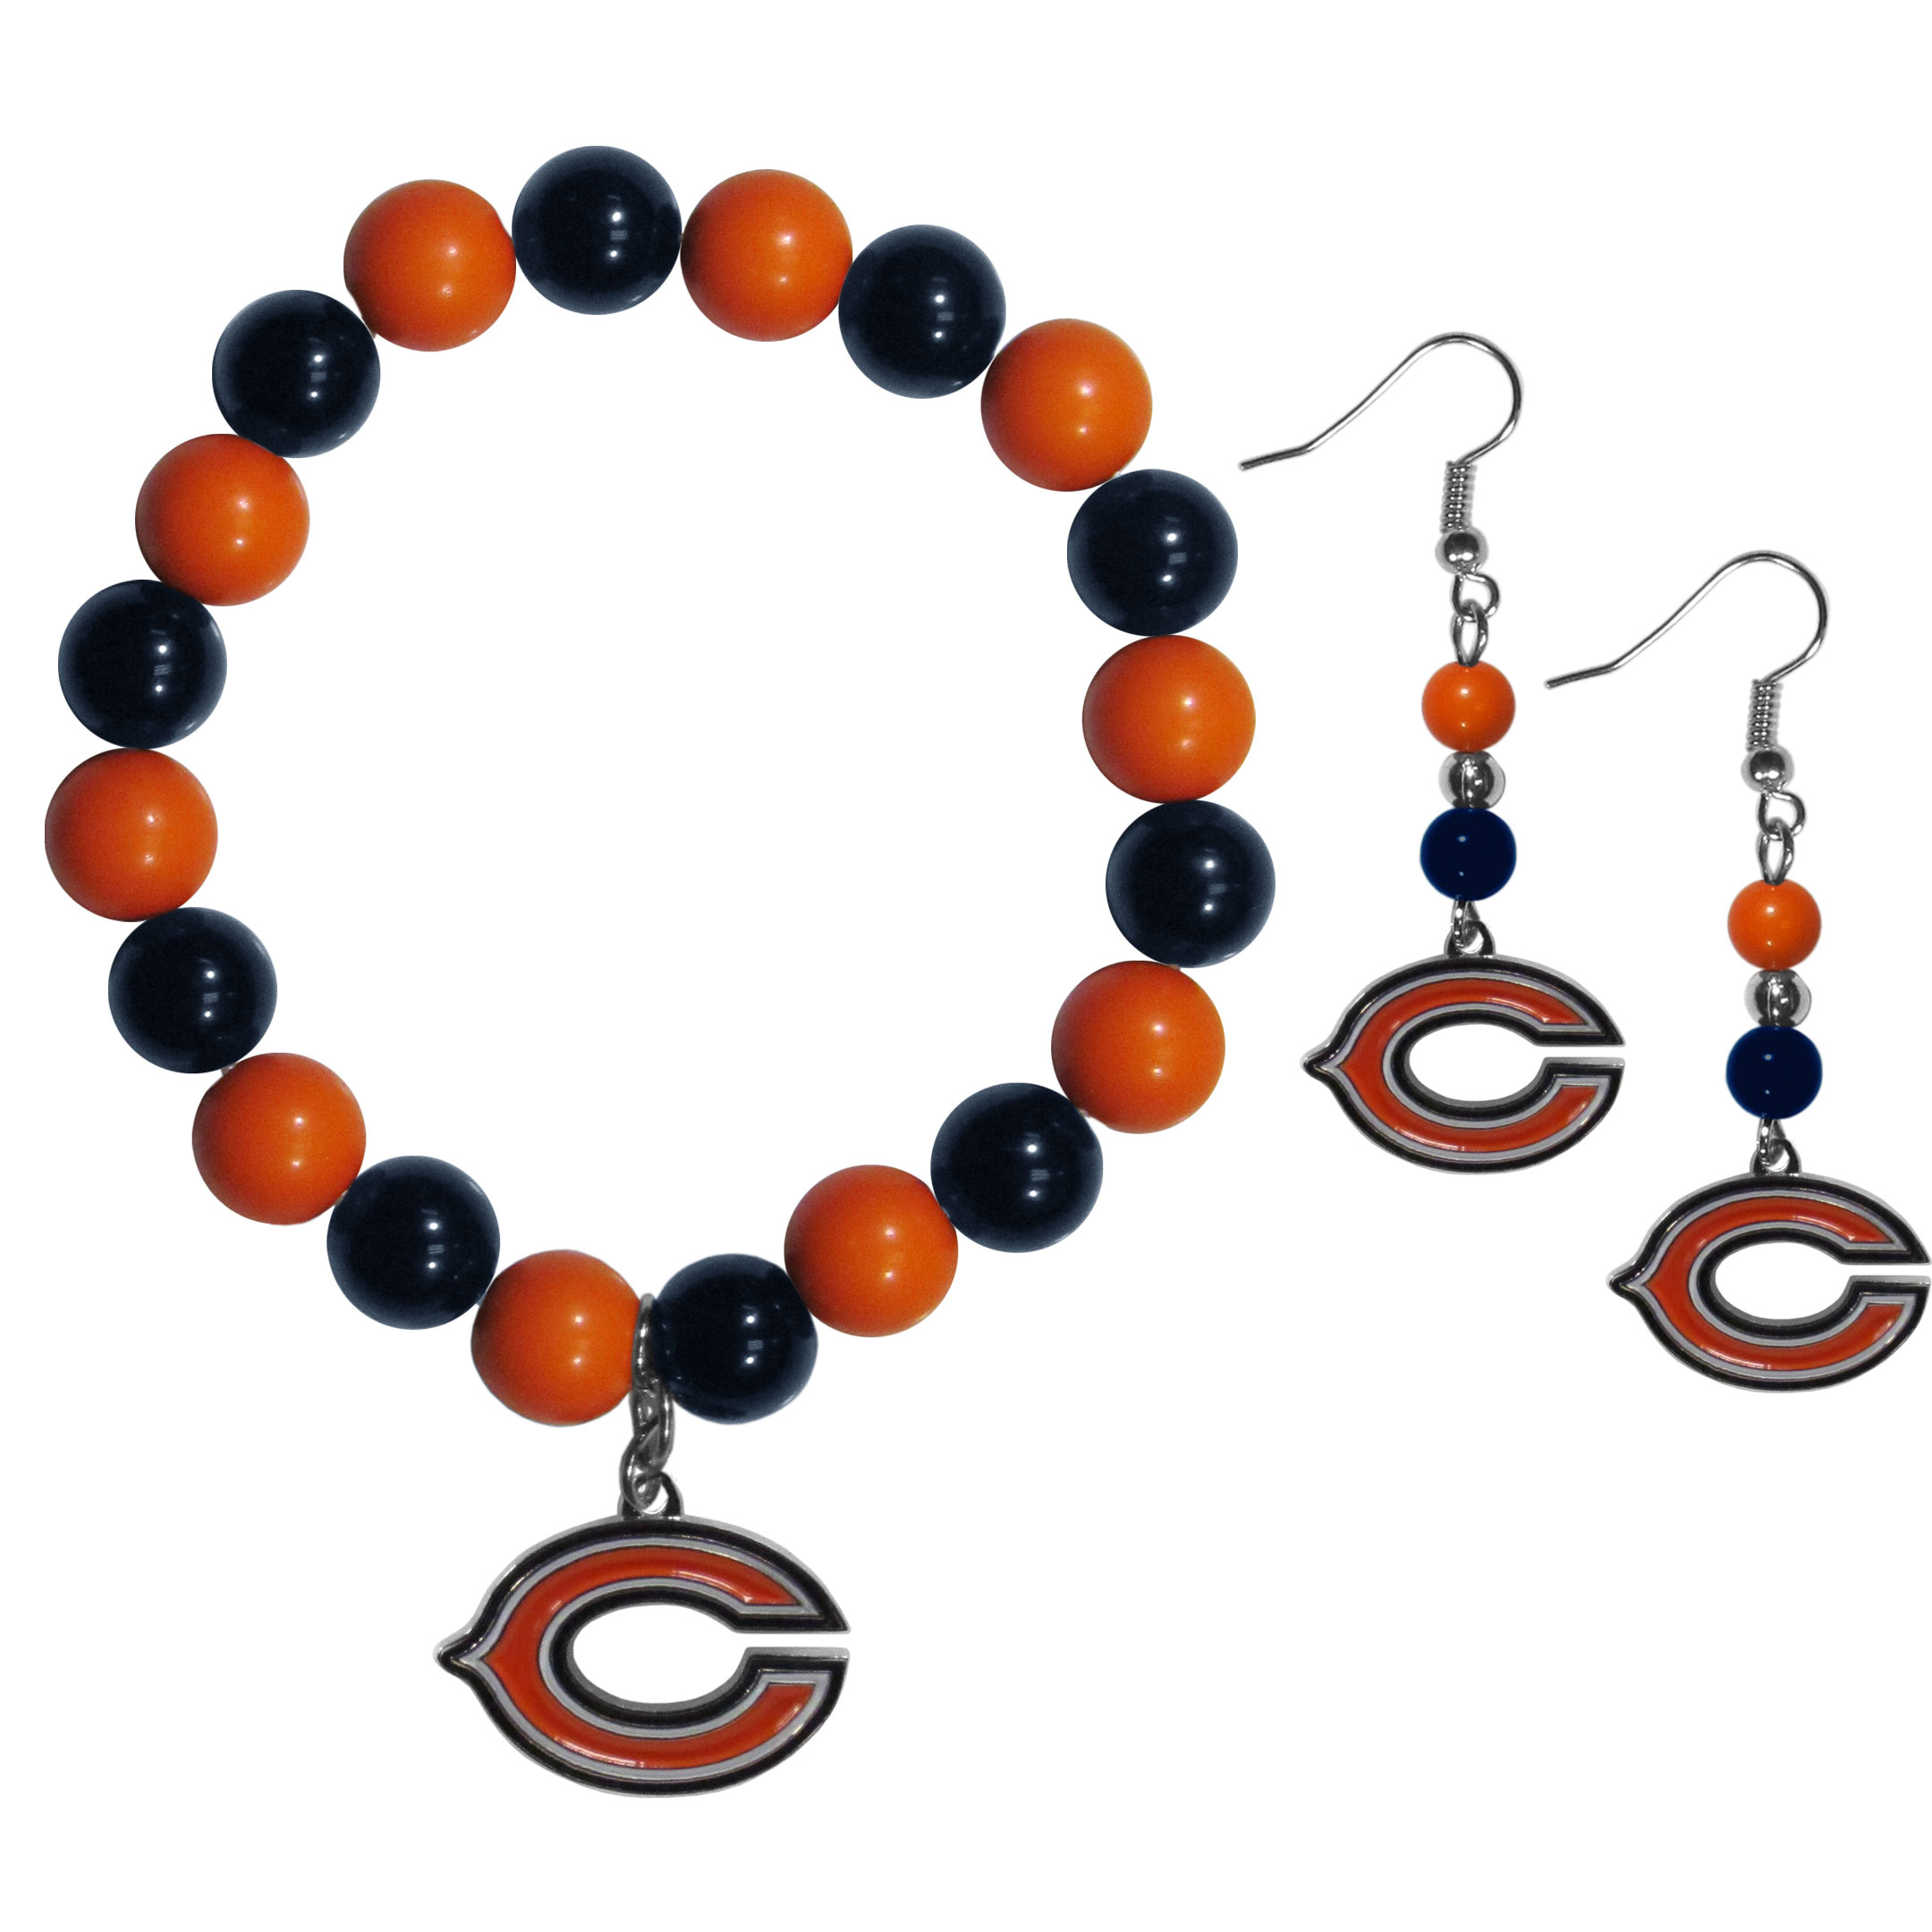 Chicago Bears Fan Bead Earrings and Bracelet Set - This fun and colorful Chicago Bears fan bead jewelry set is fun and casual with eye-catching beads in bright team colors. The fashionable dangle earrings feature a team colored beads that drop down to a carved and enameled charm. The stretch bracelet has larger matching beads that make a striking statement and have a matching team charm. These sassy yet sporty jewelry pieces make a perfect gift for any female fan. Spice up your game-day outfit with these fun colorful earrings and bracelet that are also cute enough for any day.